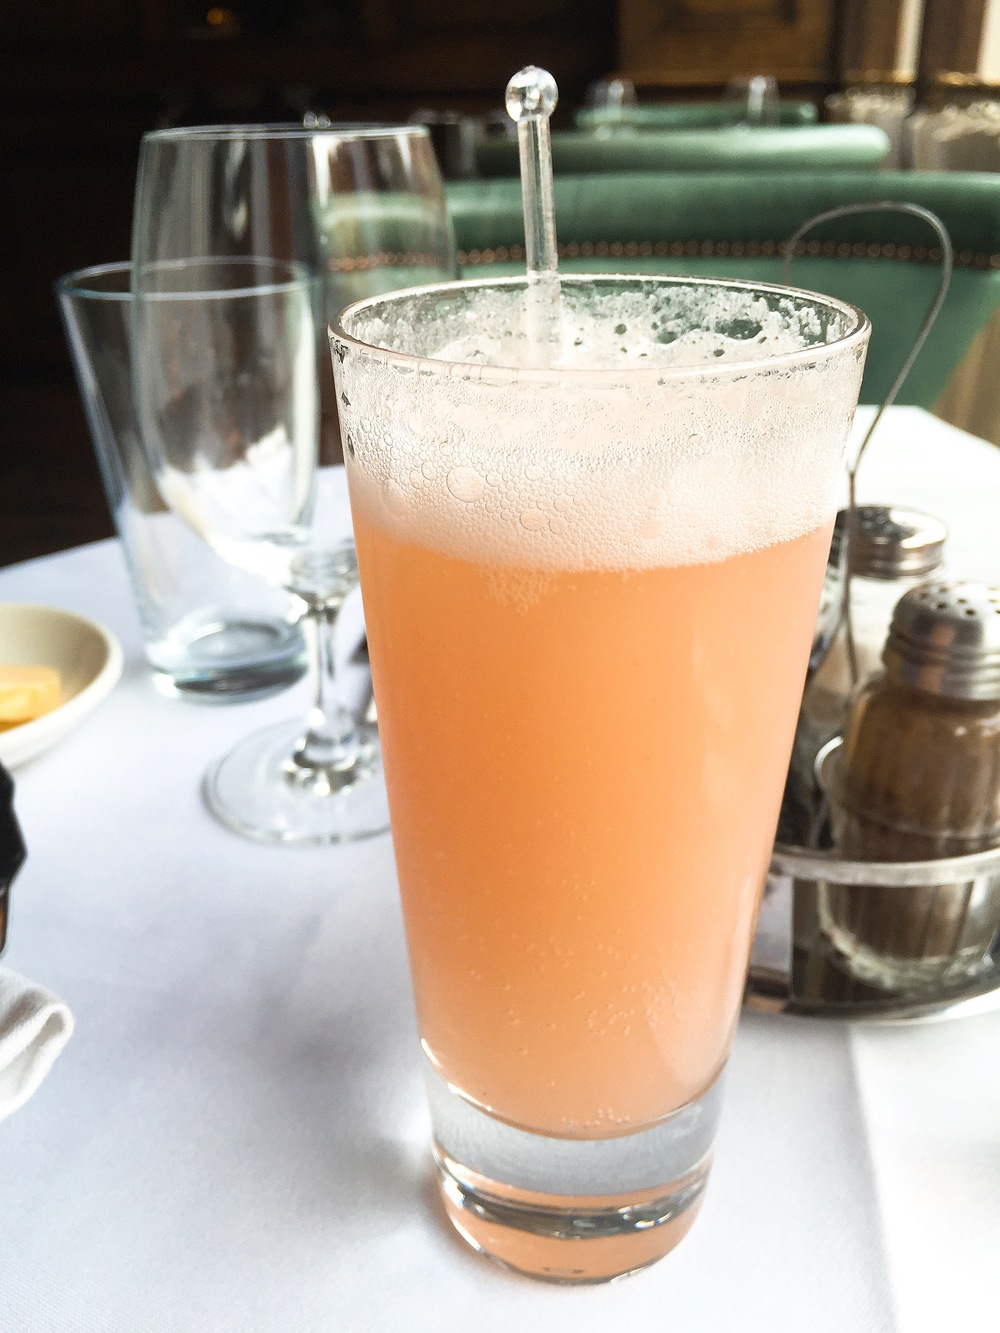 Review: Cafe Monico - drinks